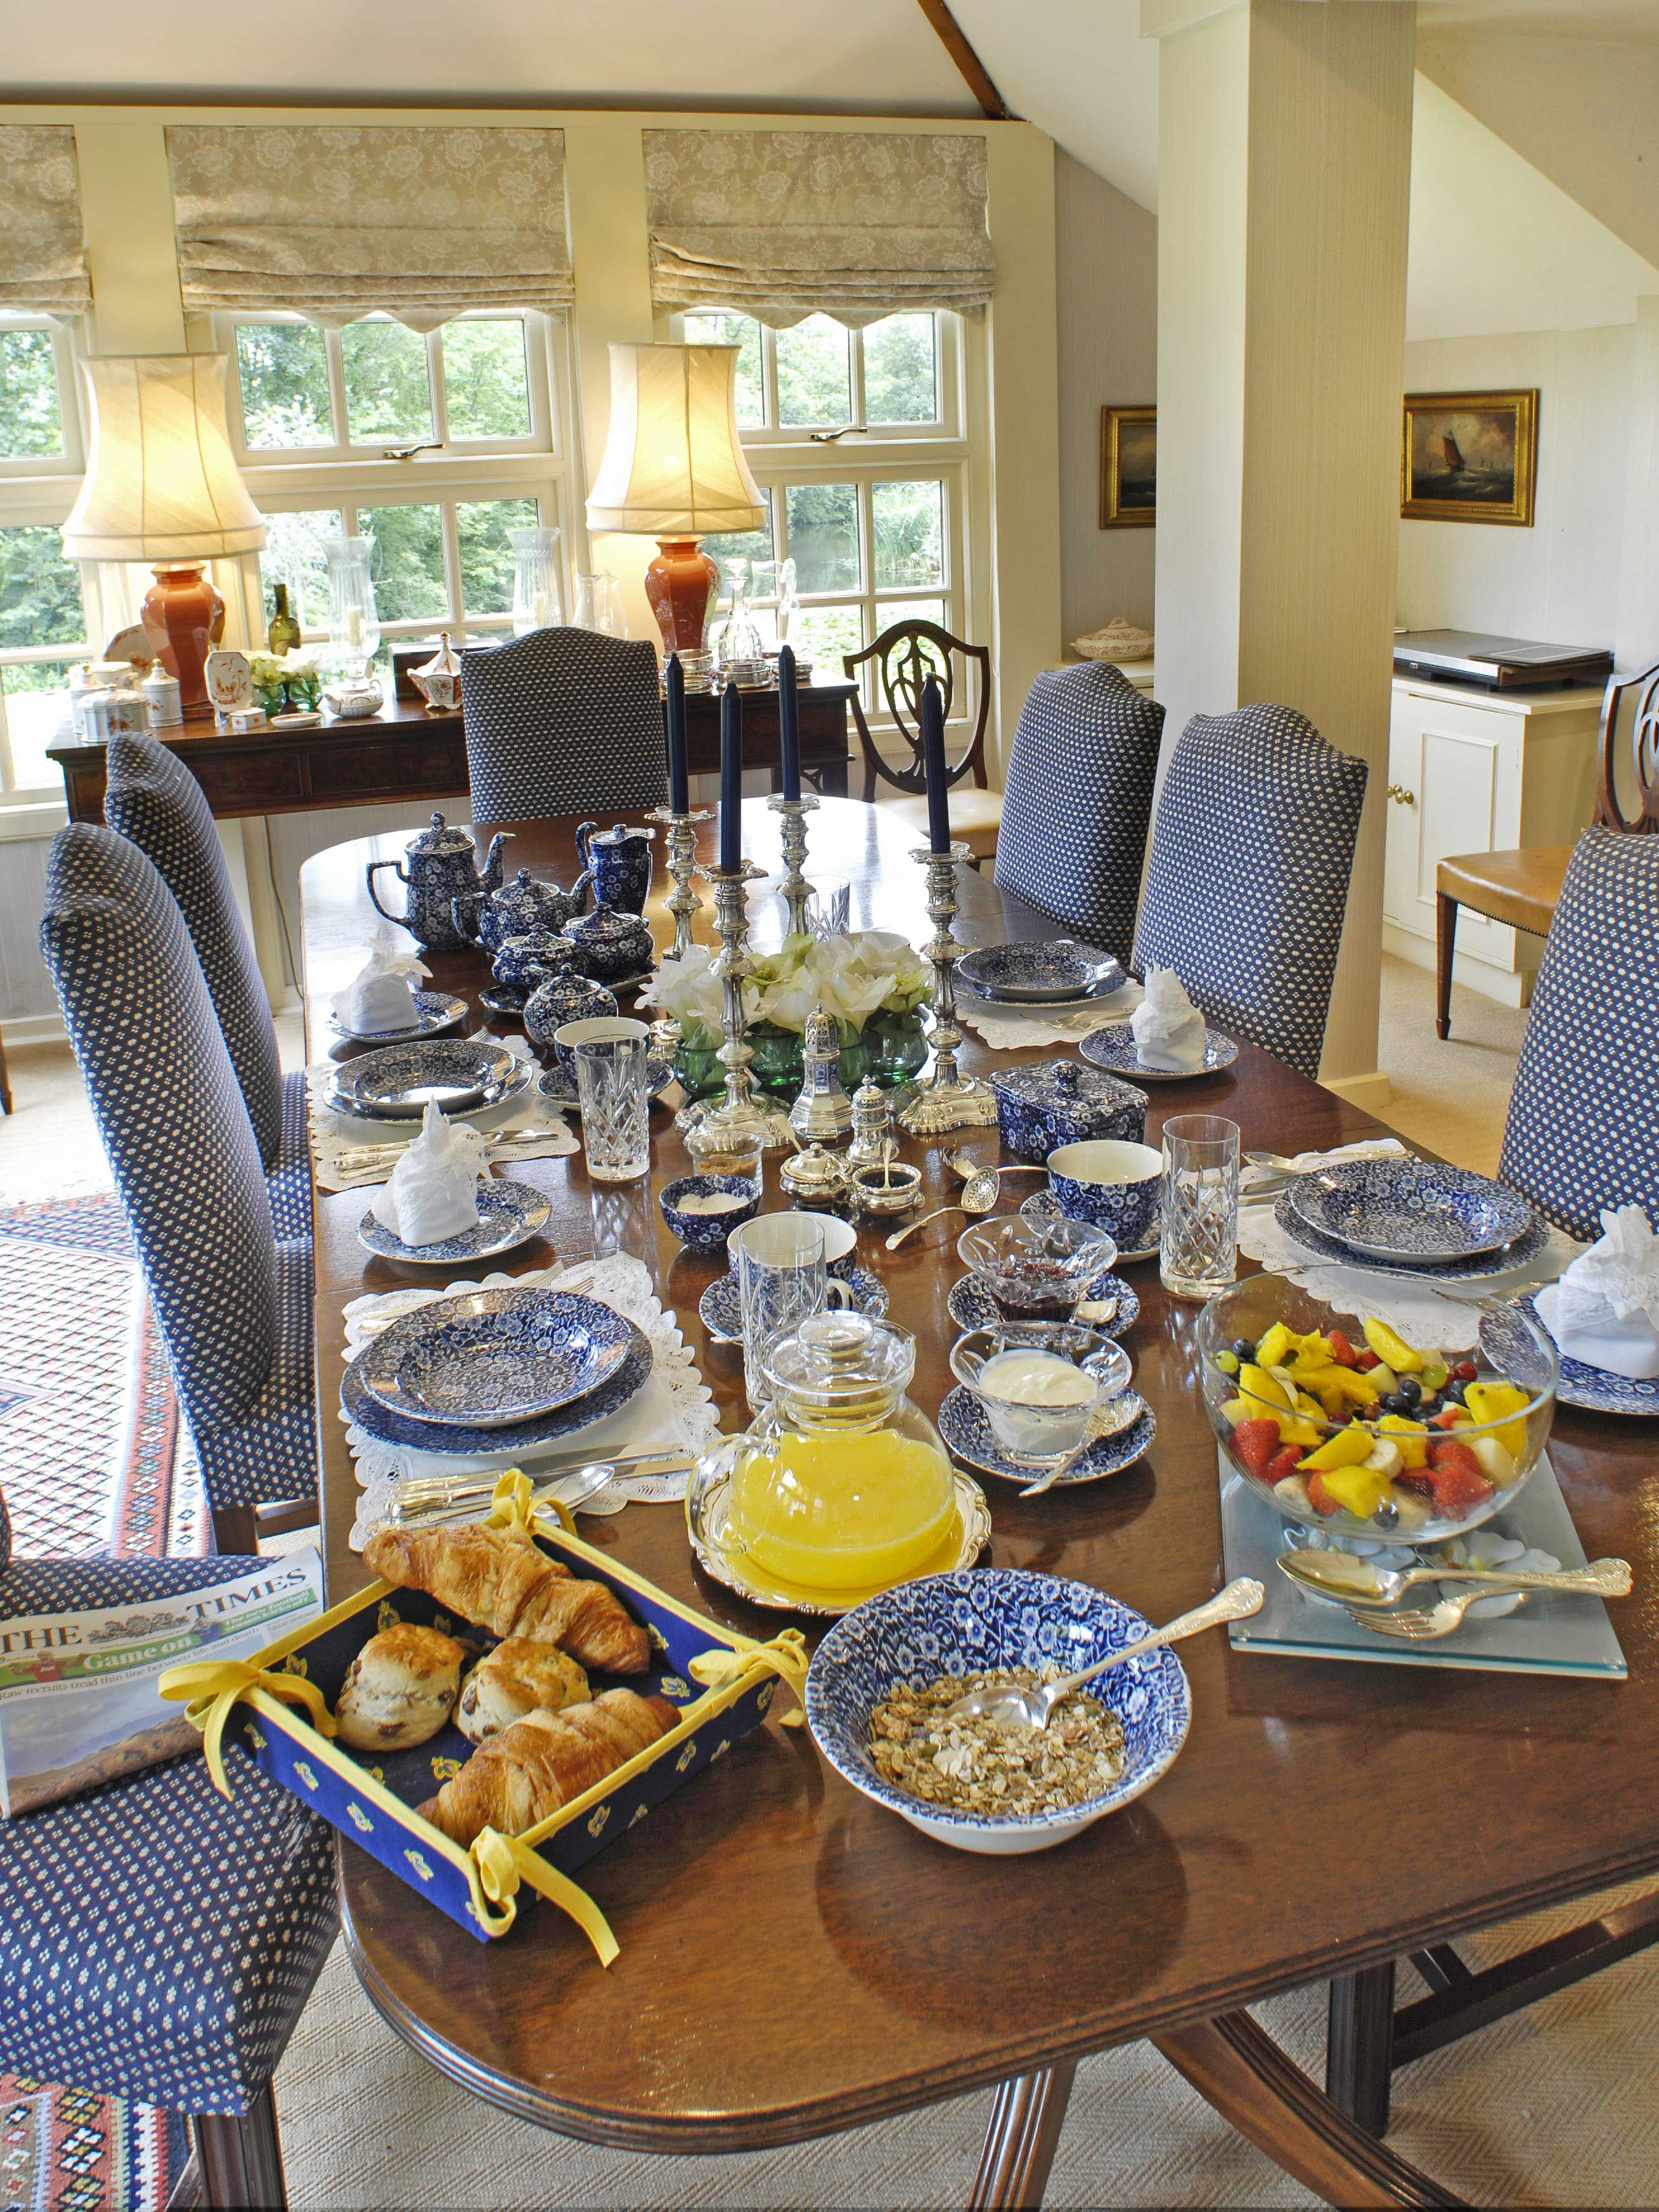 Breakfast In The Elegant Dining Room At York House Luxury Bed And Breakfast In The Cotswolds Elegant Dining Room Bed And Breakfast Table Cloth Decorations